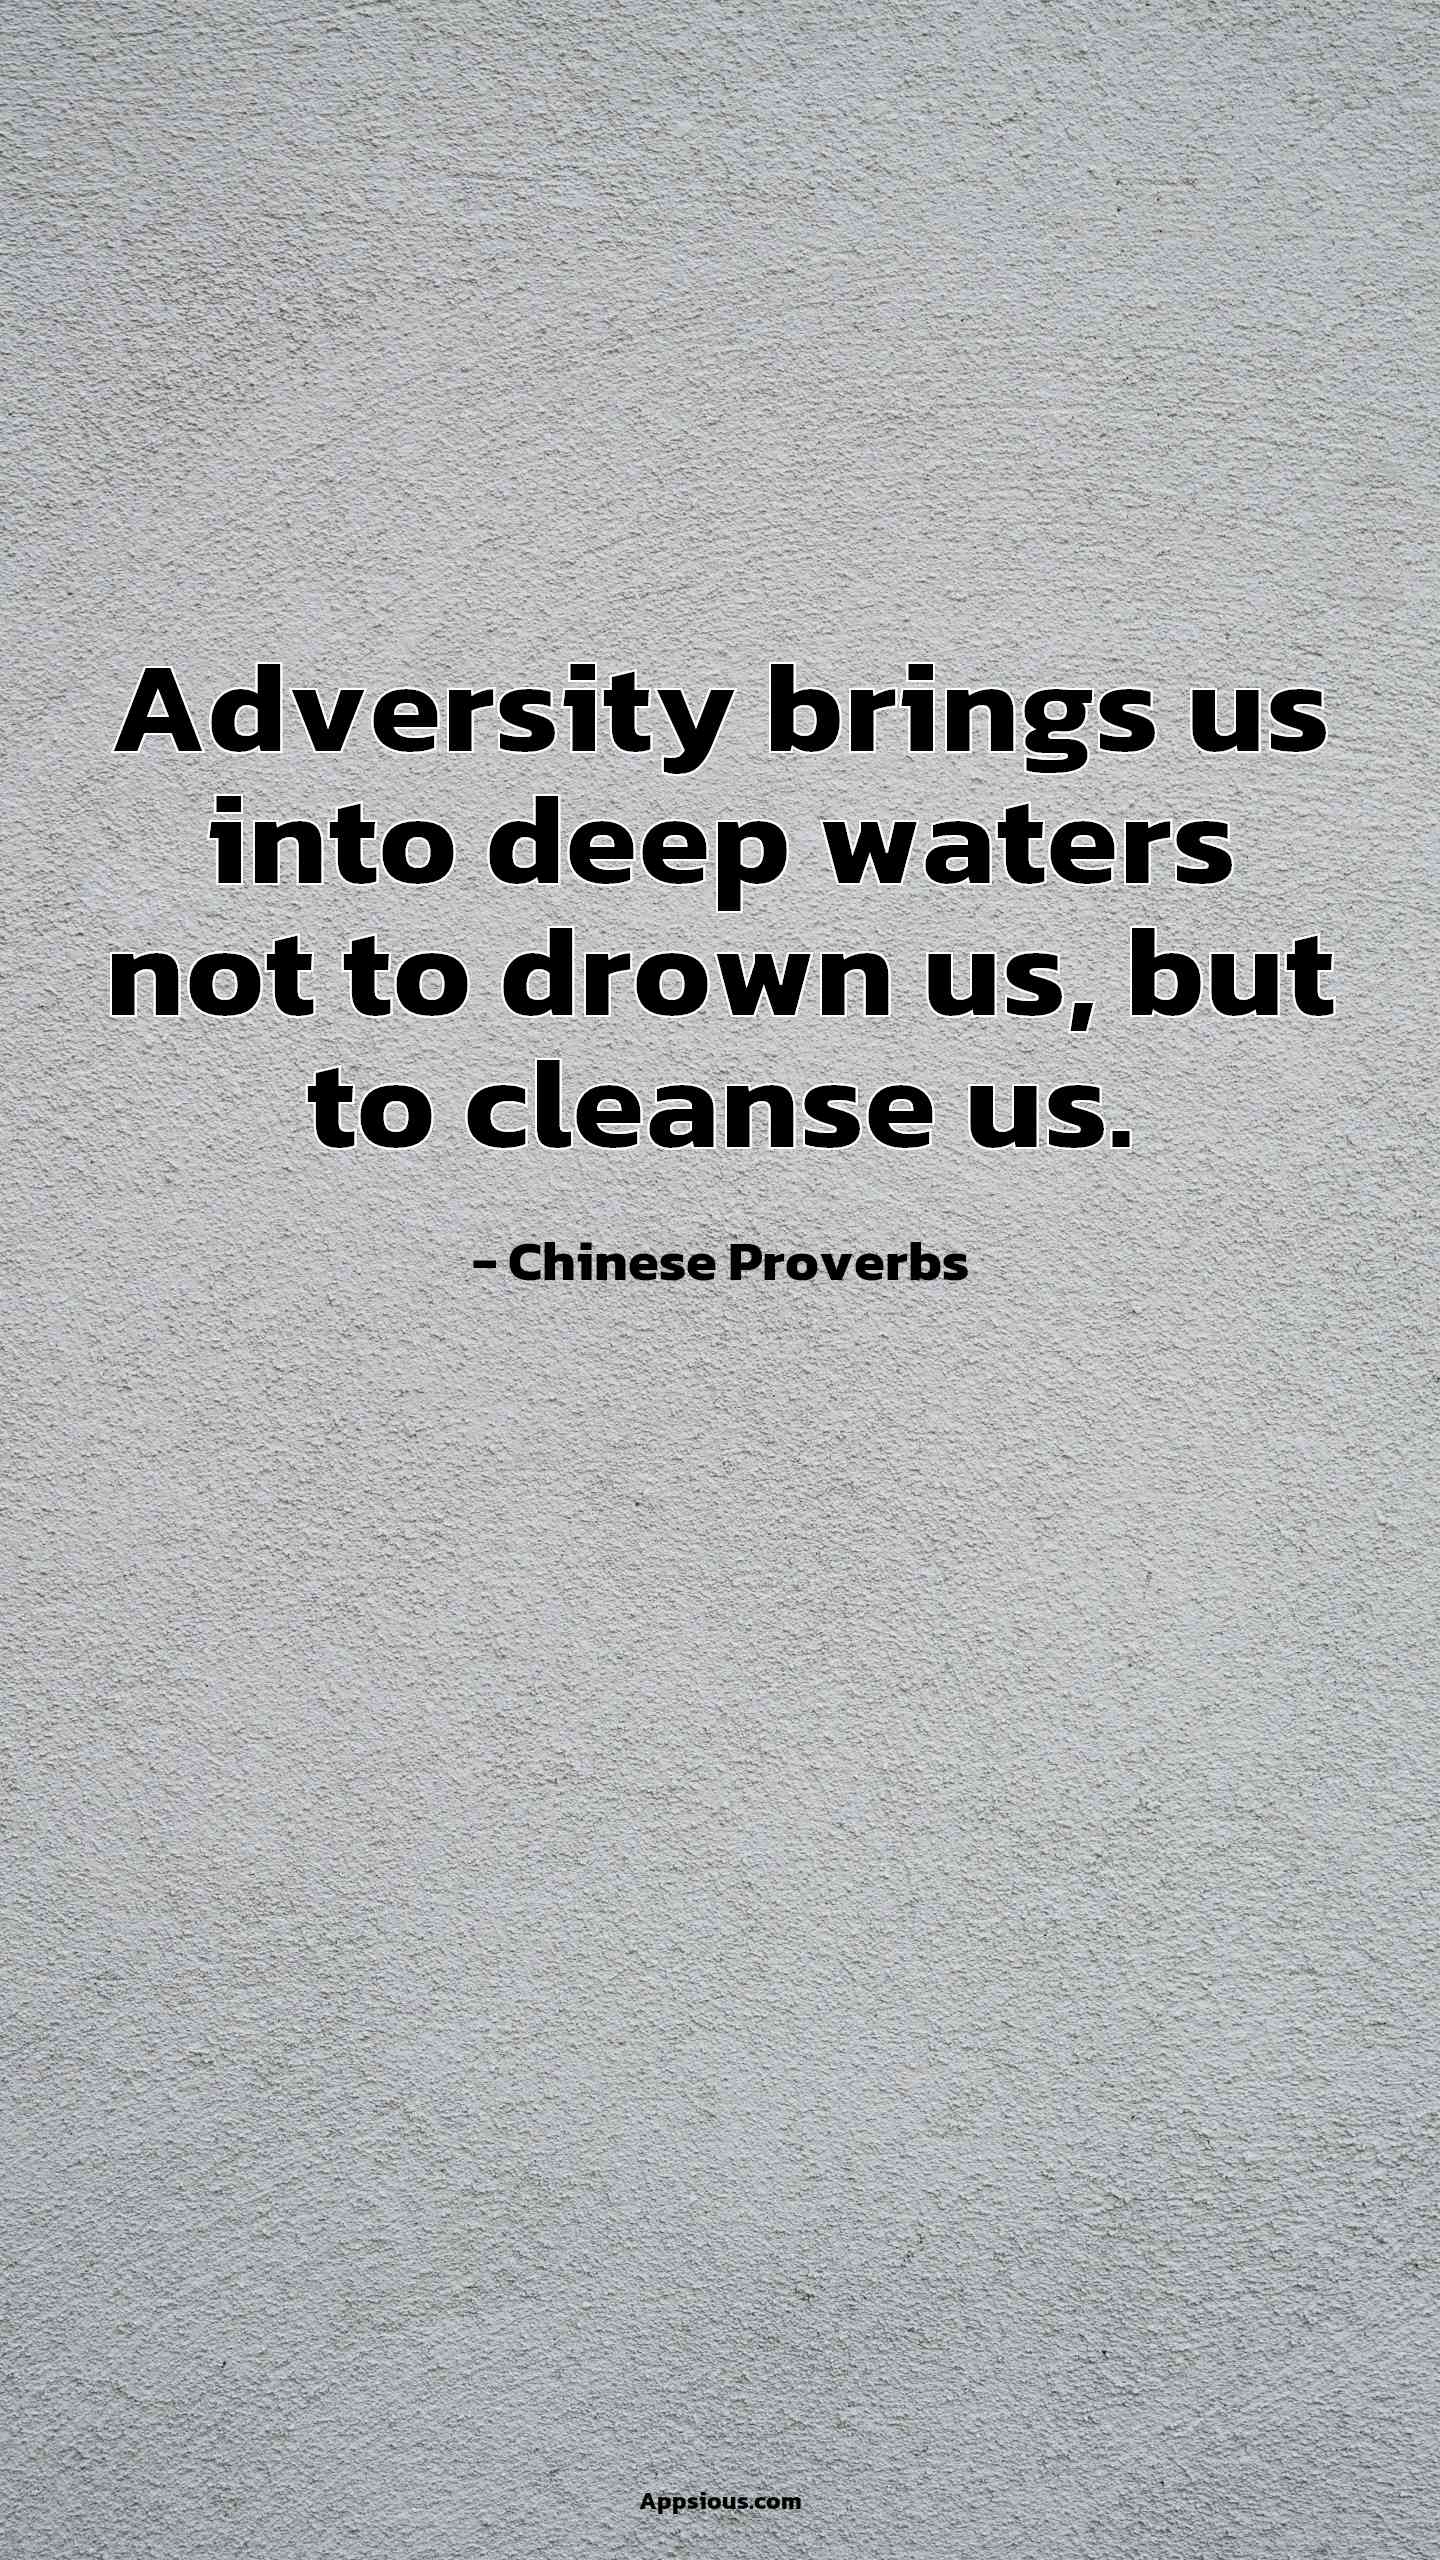 Adversity brings us into deep waters not to drown us, but to cleanse us.